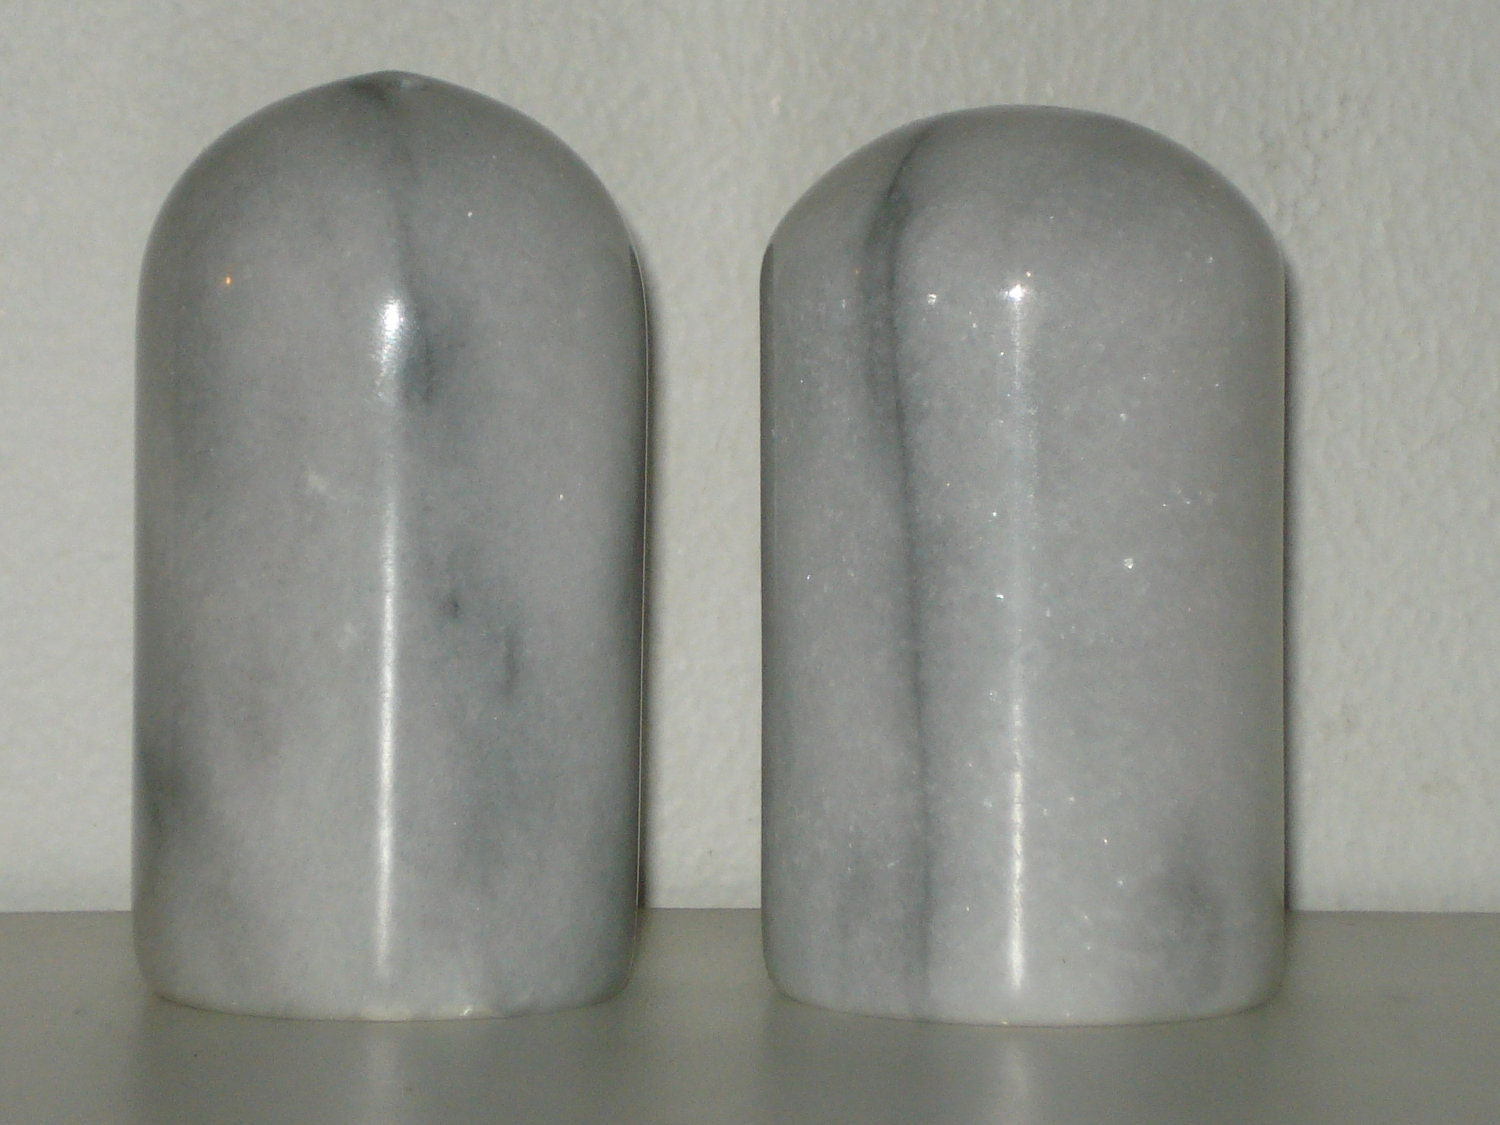 Marble Salt And Pepper Shakers Grey Stone Pillar Kitchenware